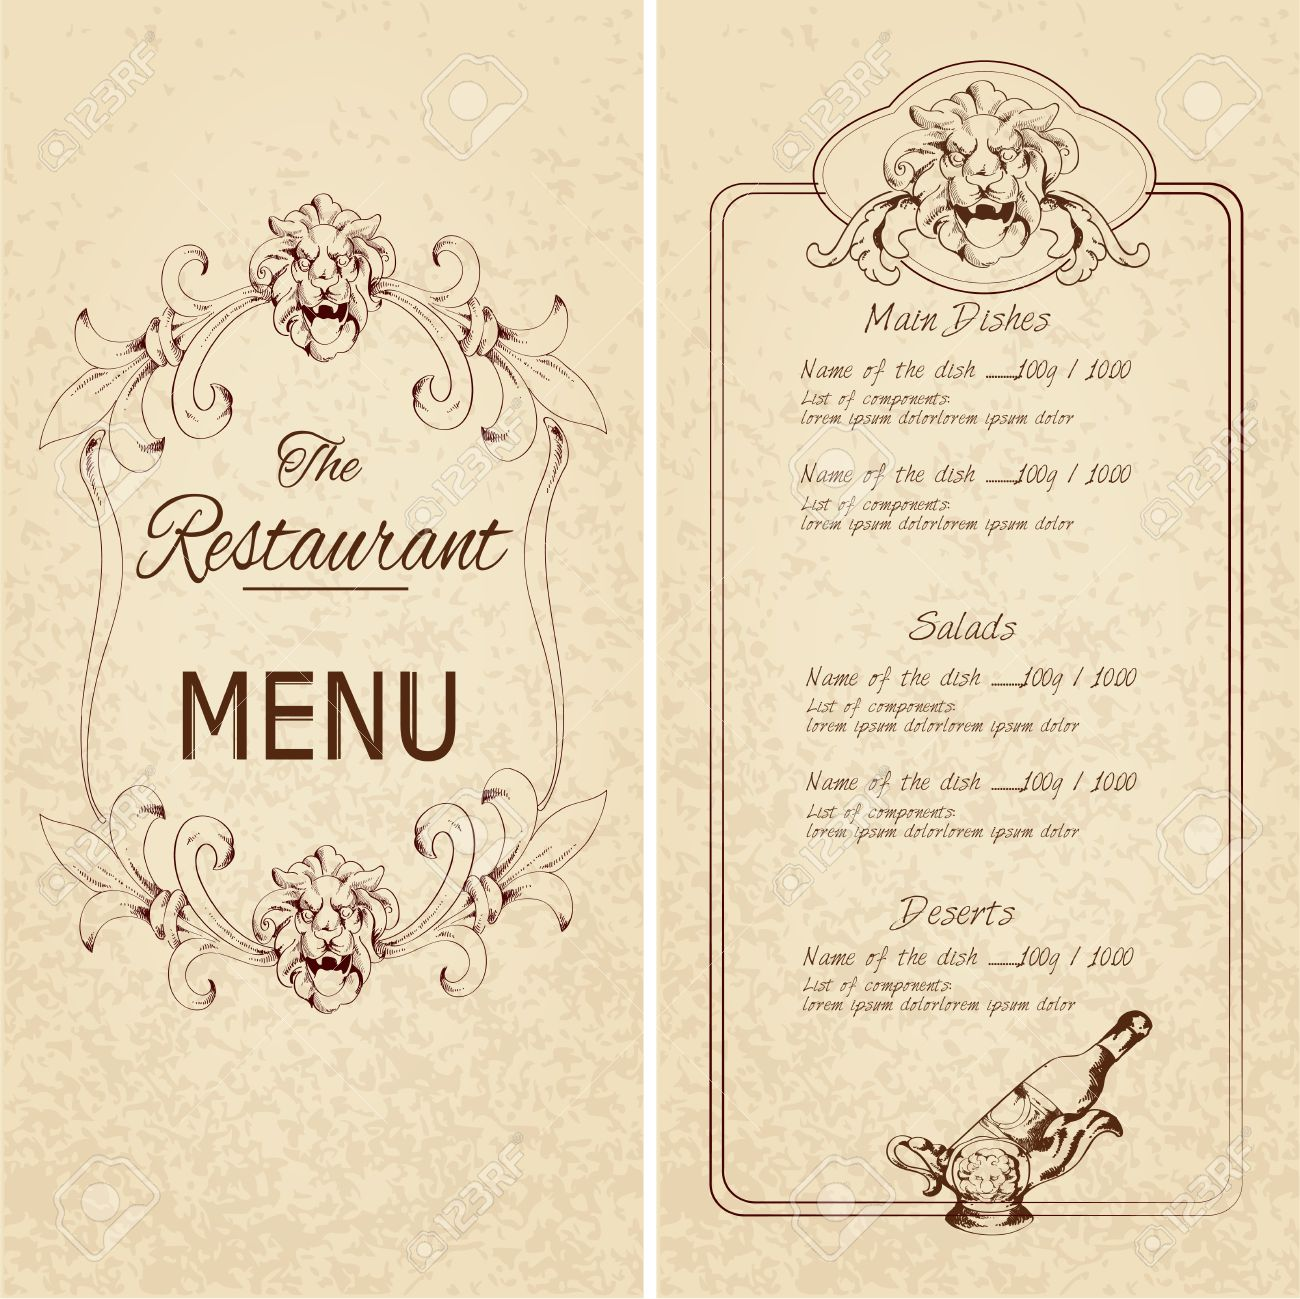 Wine Menu Template - Eliolera.com